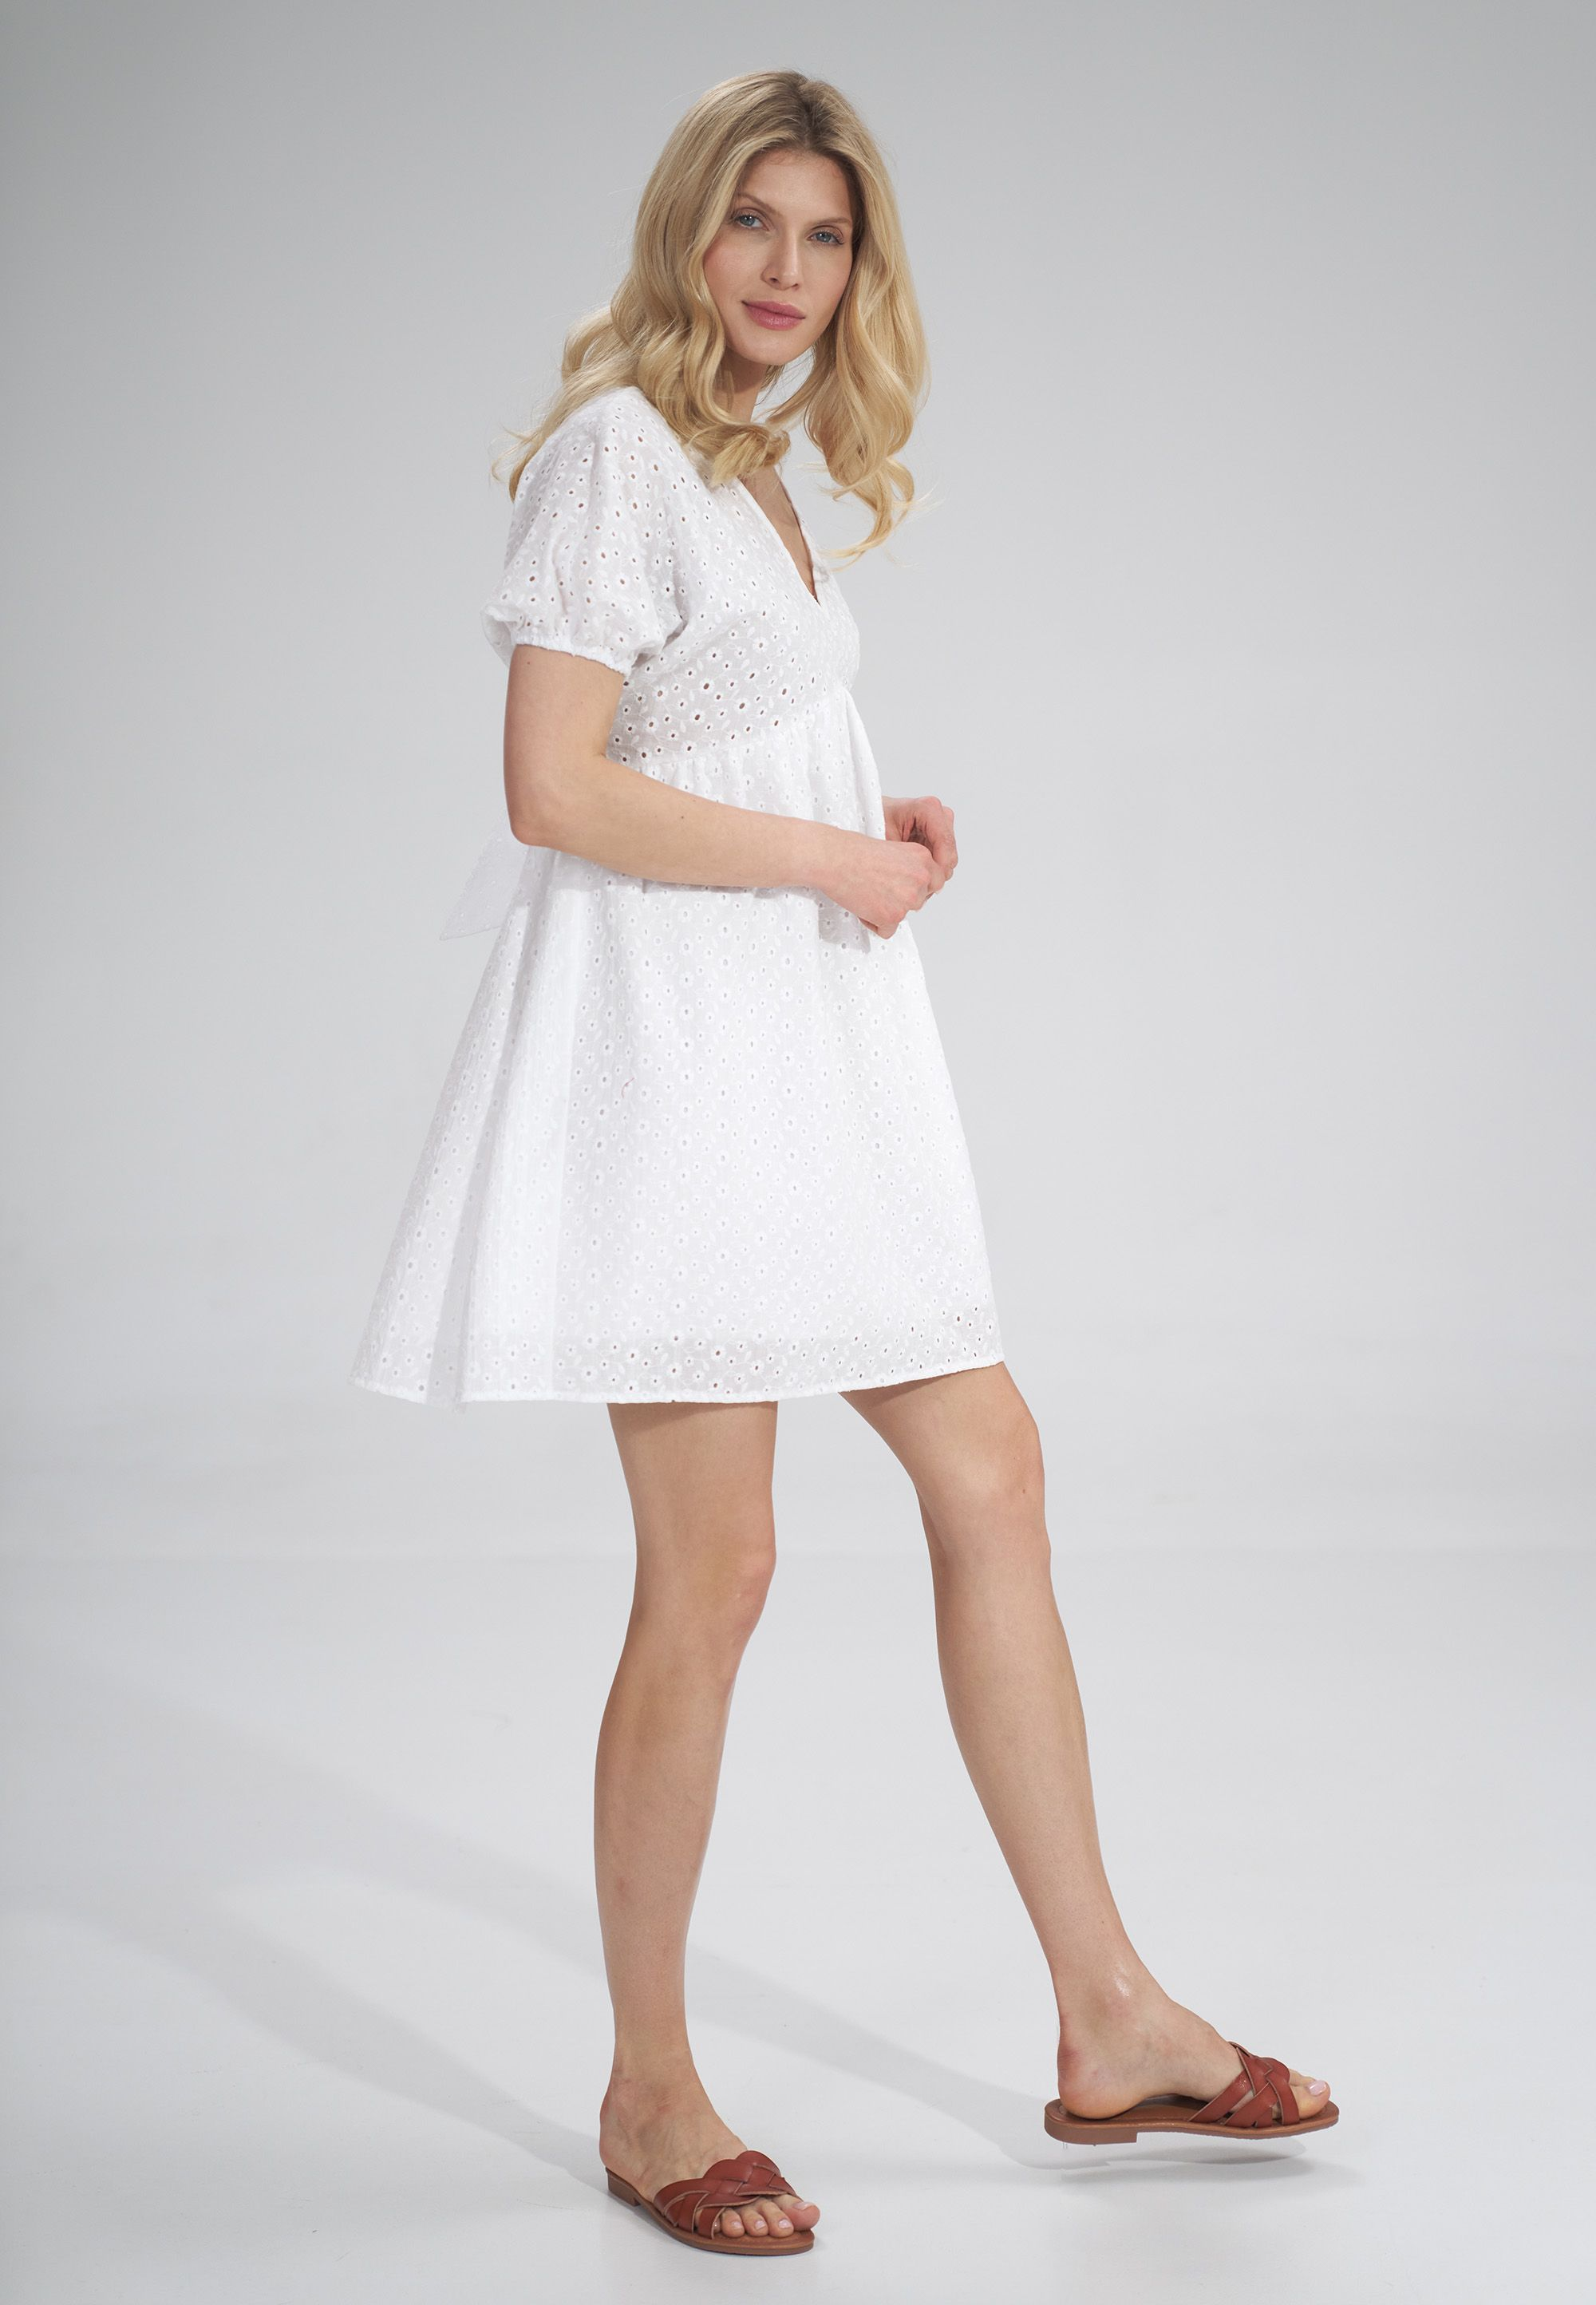 Embroidered Mini Dress with Short Puff Sleeves